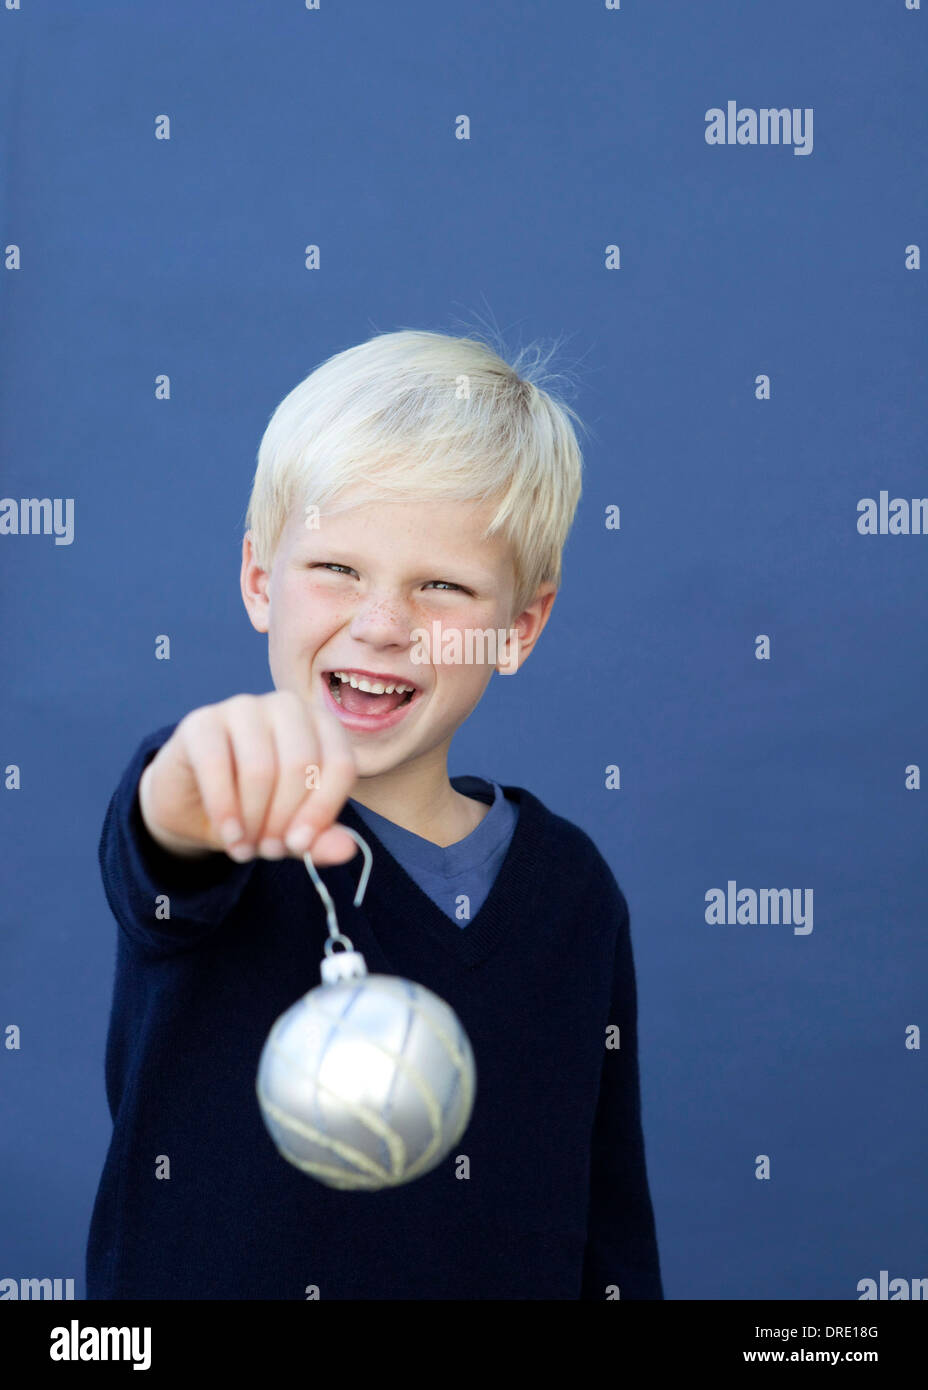 Portrait of young boy holding up ornament - Stock Image